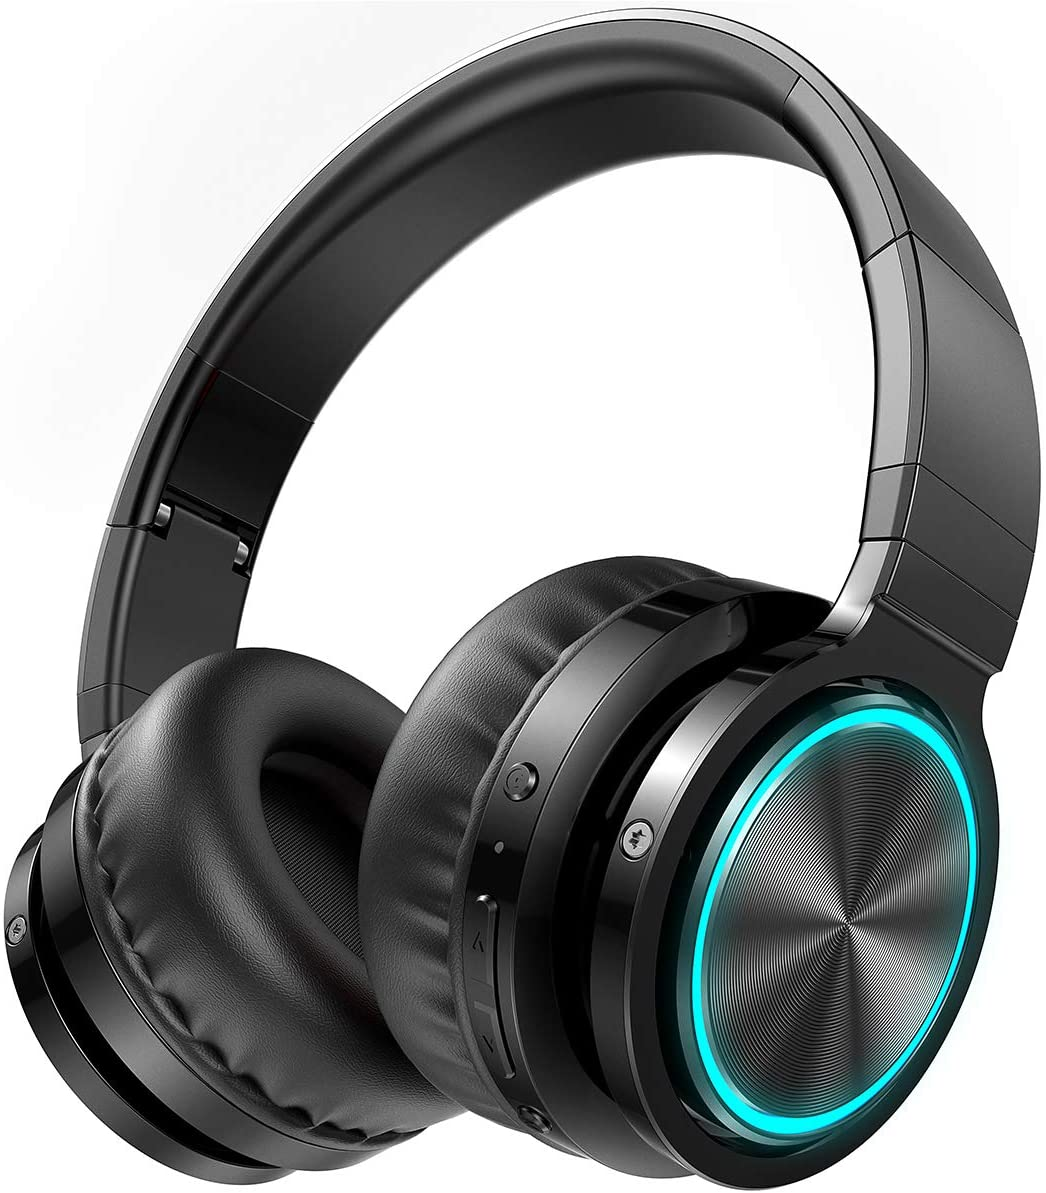 Picun B12 Wireless Bluetooth Headphones,HD Stereo Sound Over Ear Headphones with Built-in Microphones, Deep Bass 20 Hours Playtime, Fast Charge Bluetooth 5.0 Headset for Adults, School, Travel, Black